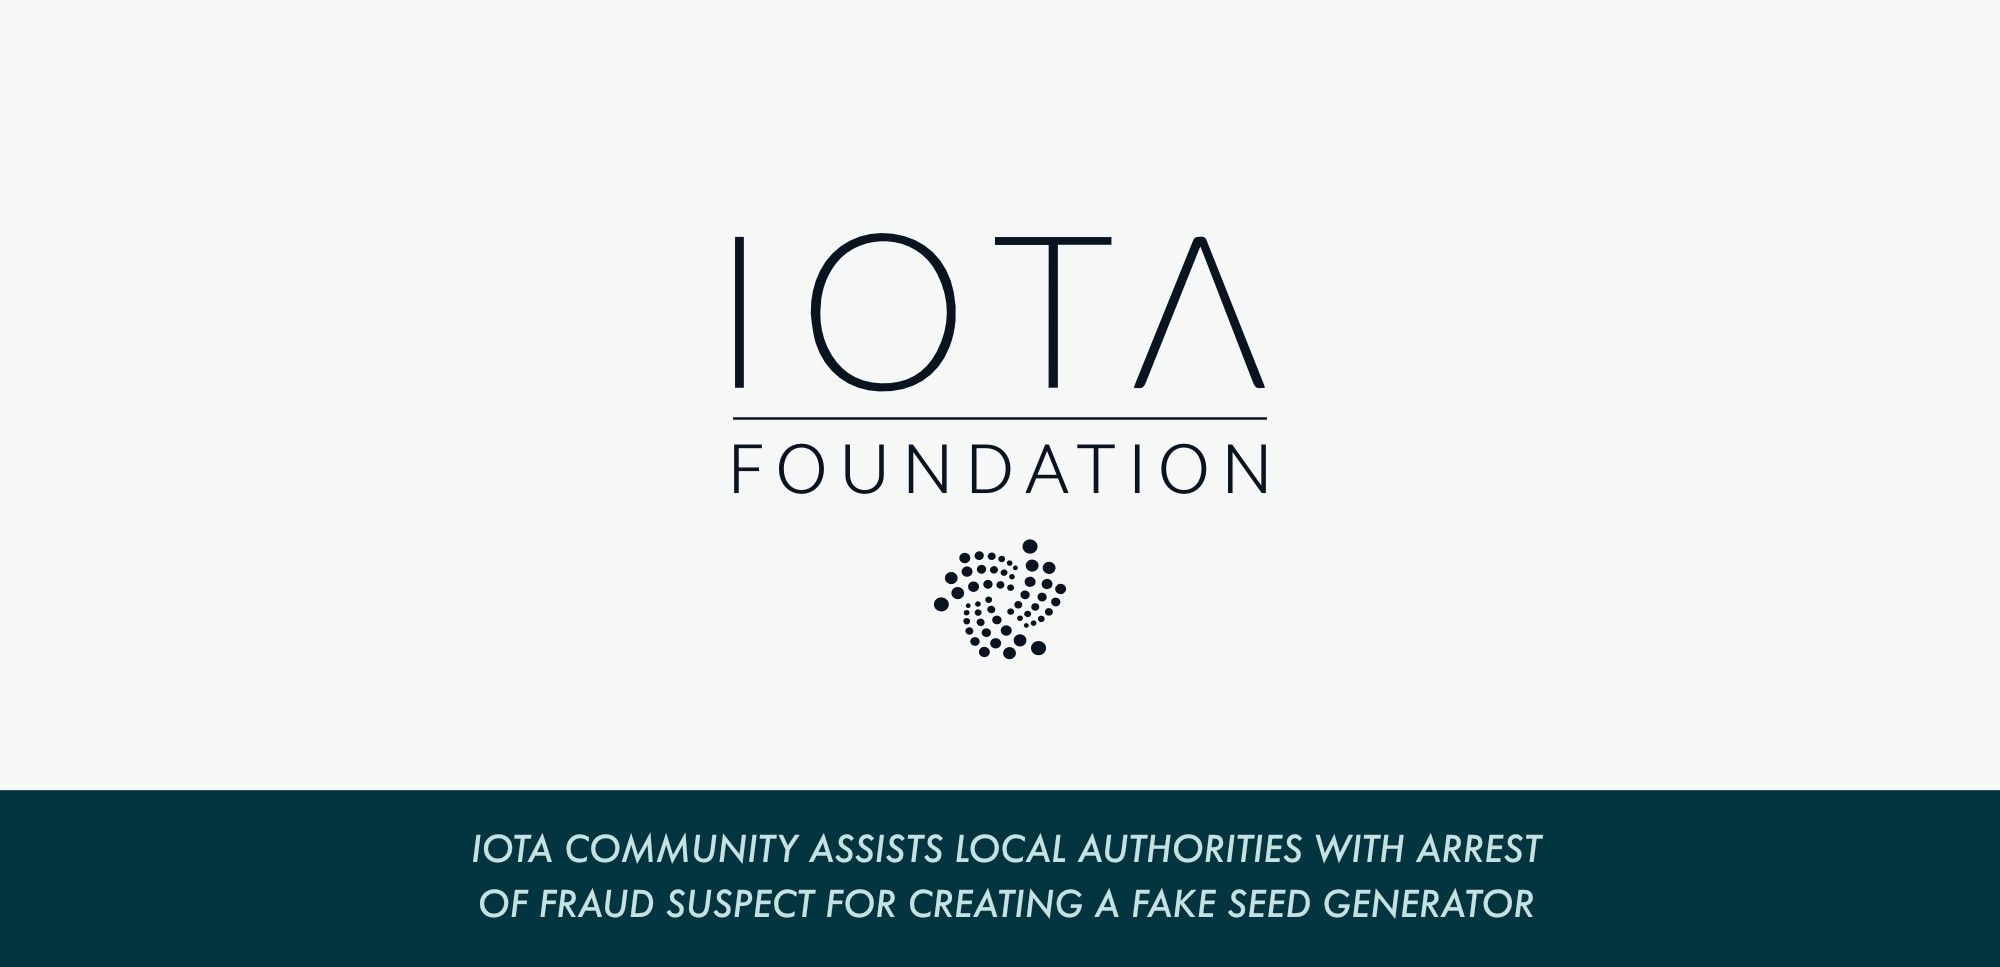 IOTA Community Assists Local Authorities with Arrest of